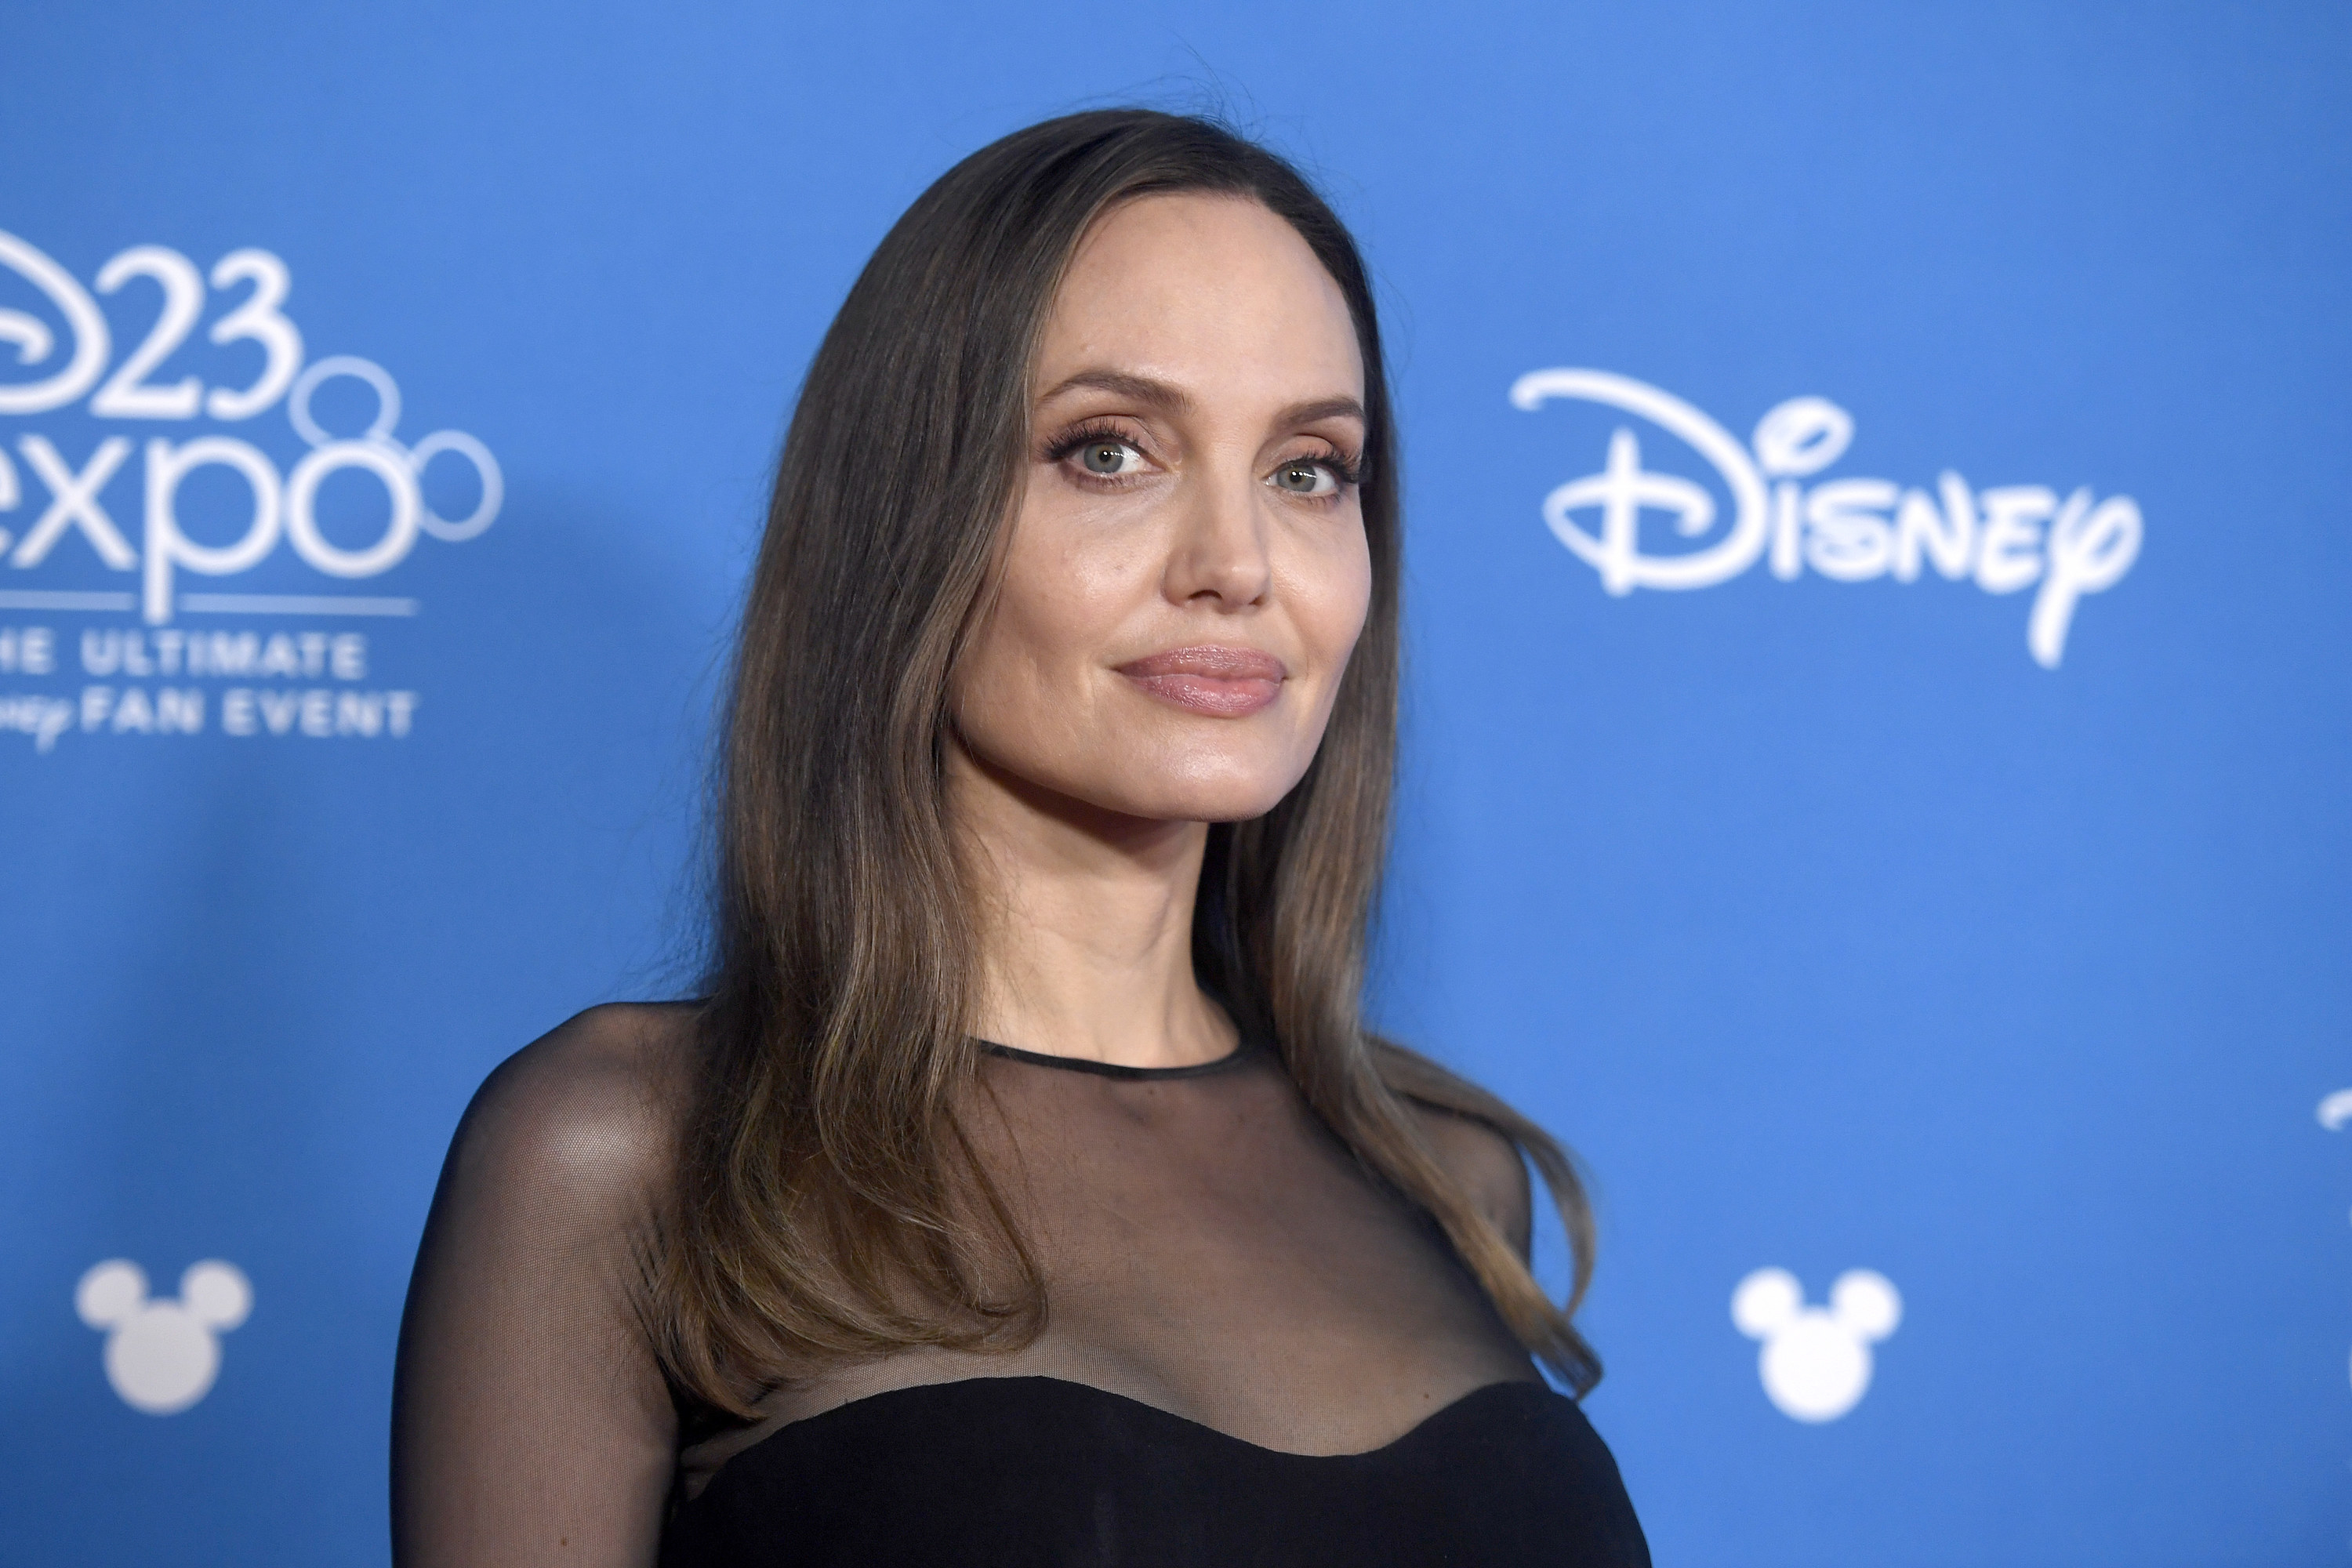 Angelina looks at the camera while wearing a black sheer top